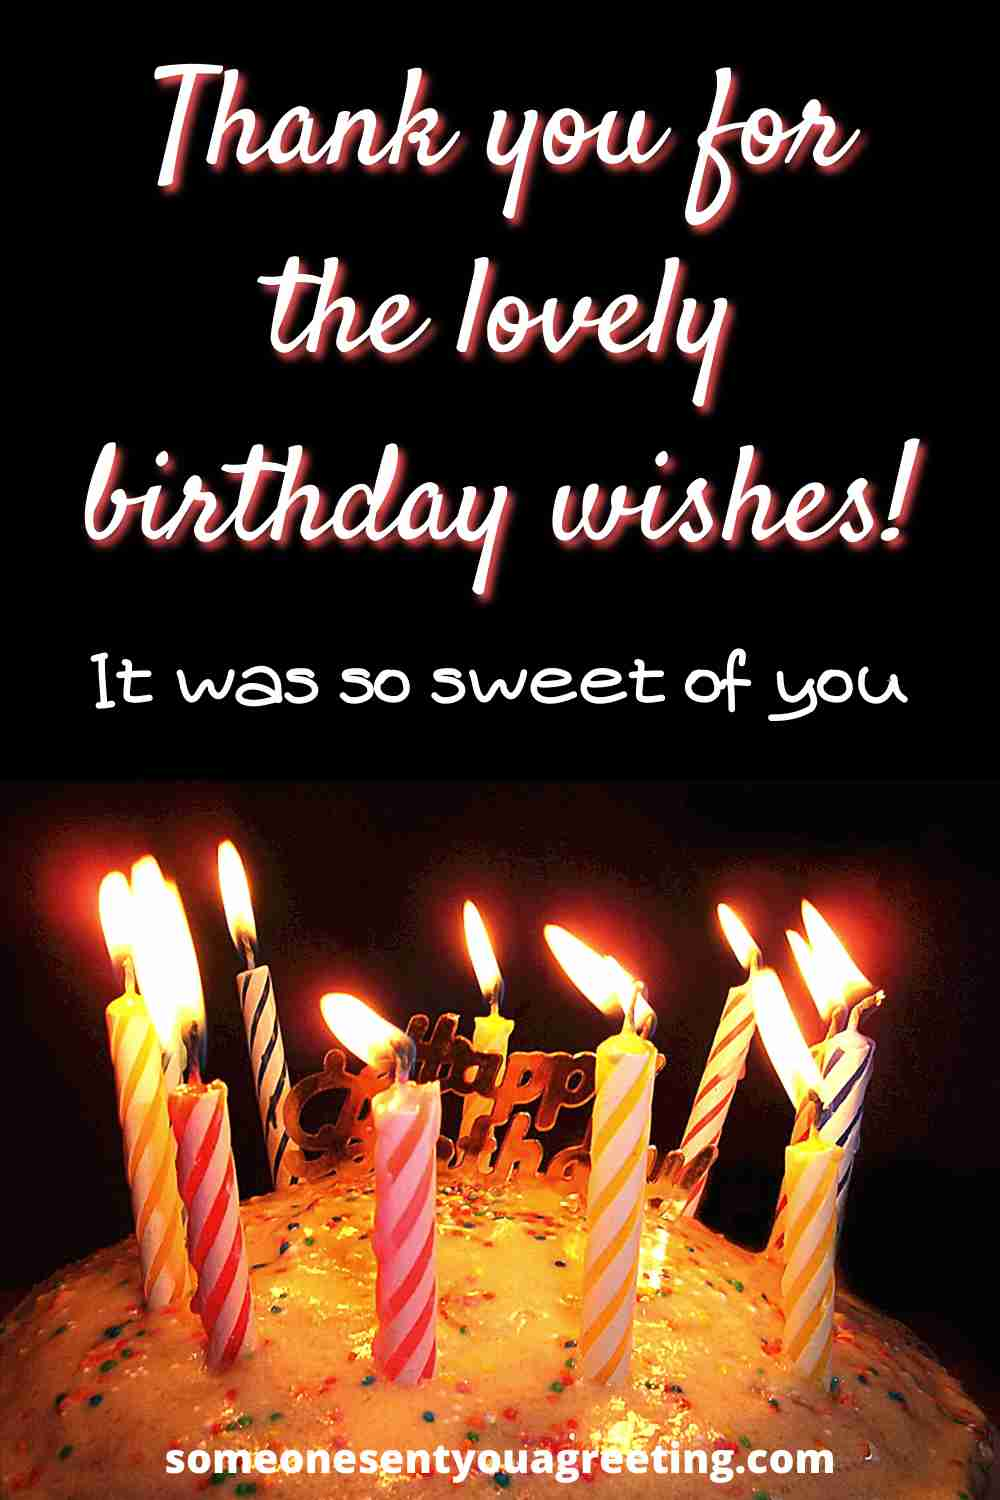 sweet birthday wishes thank you